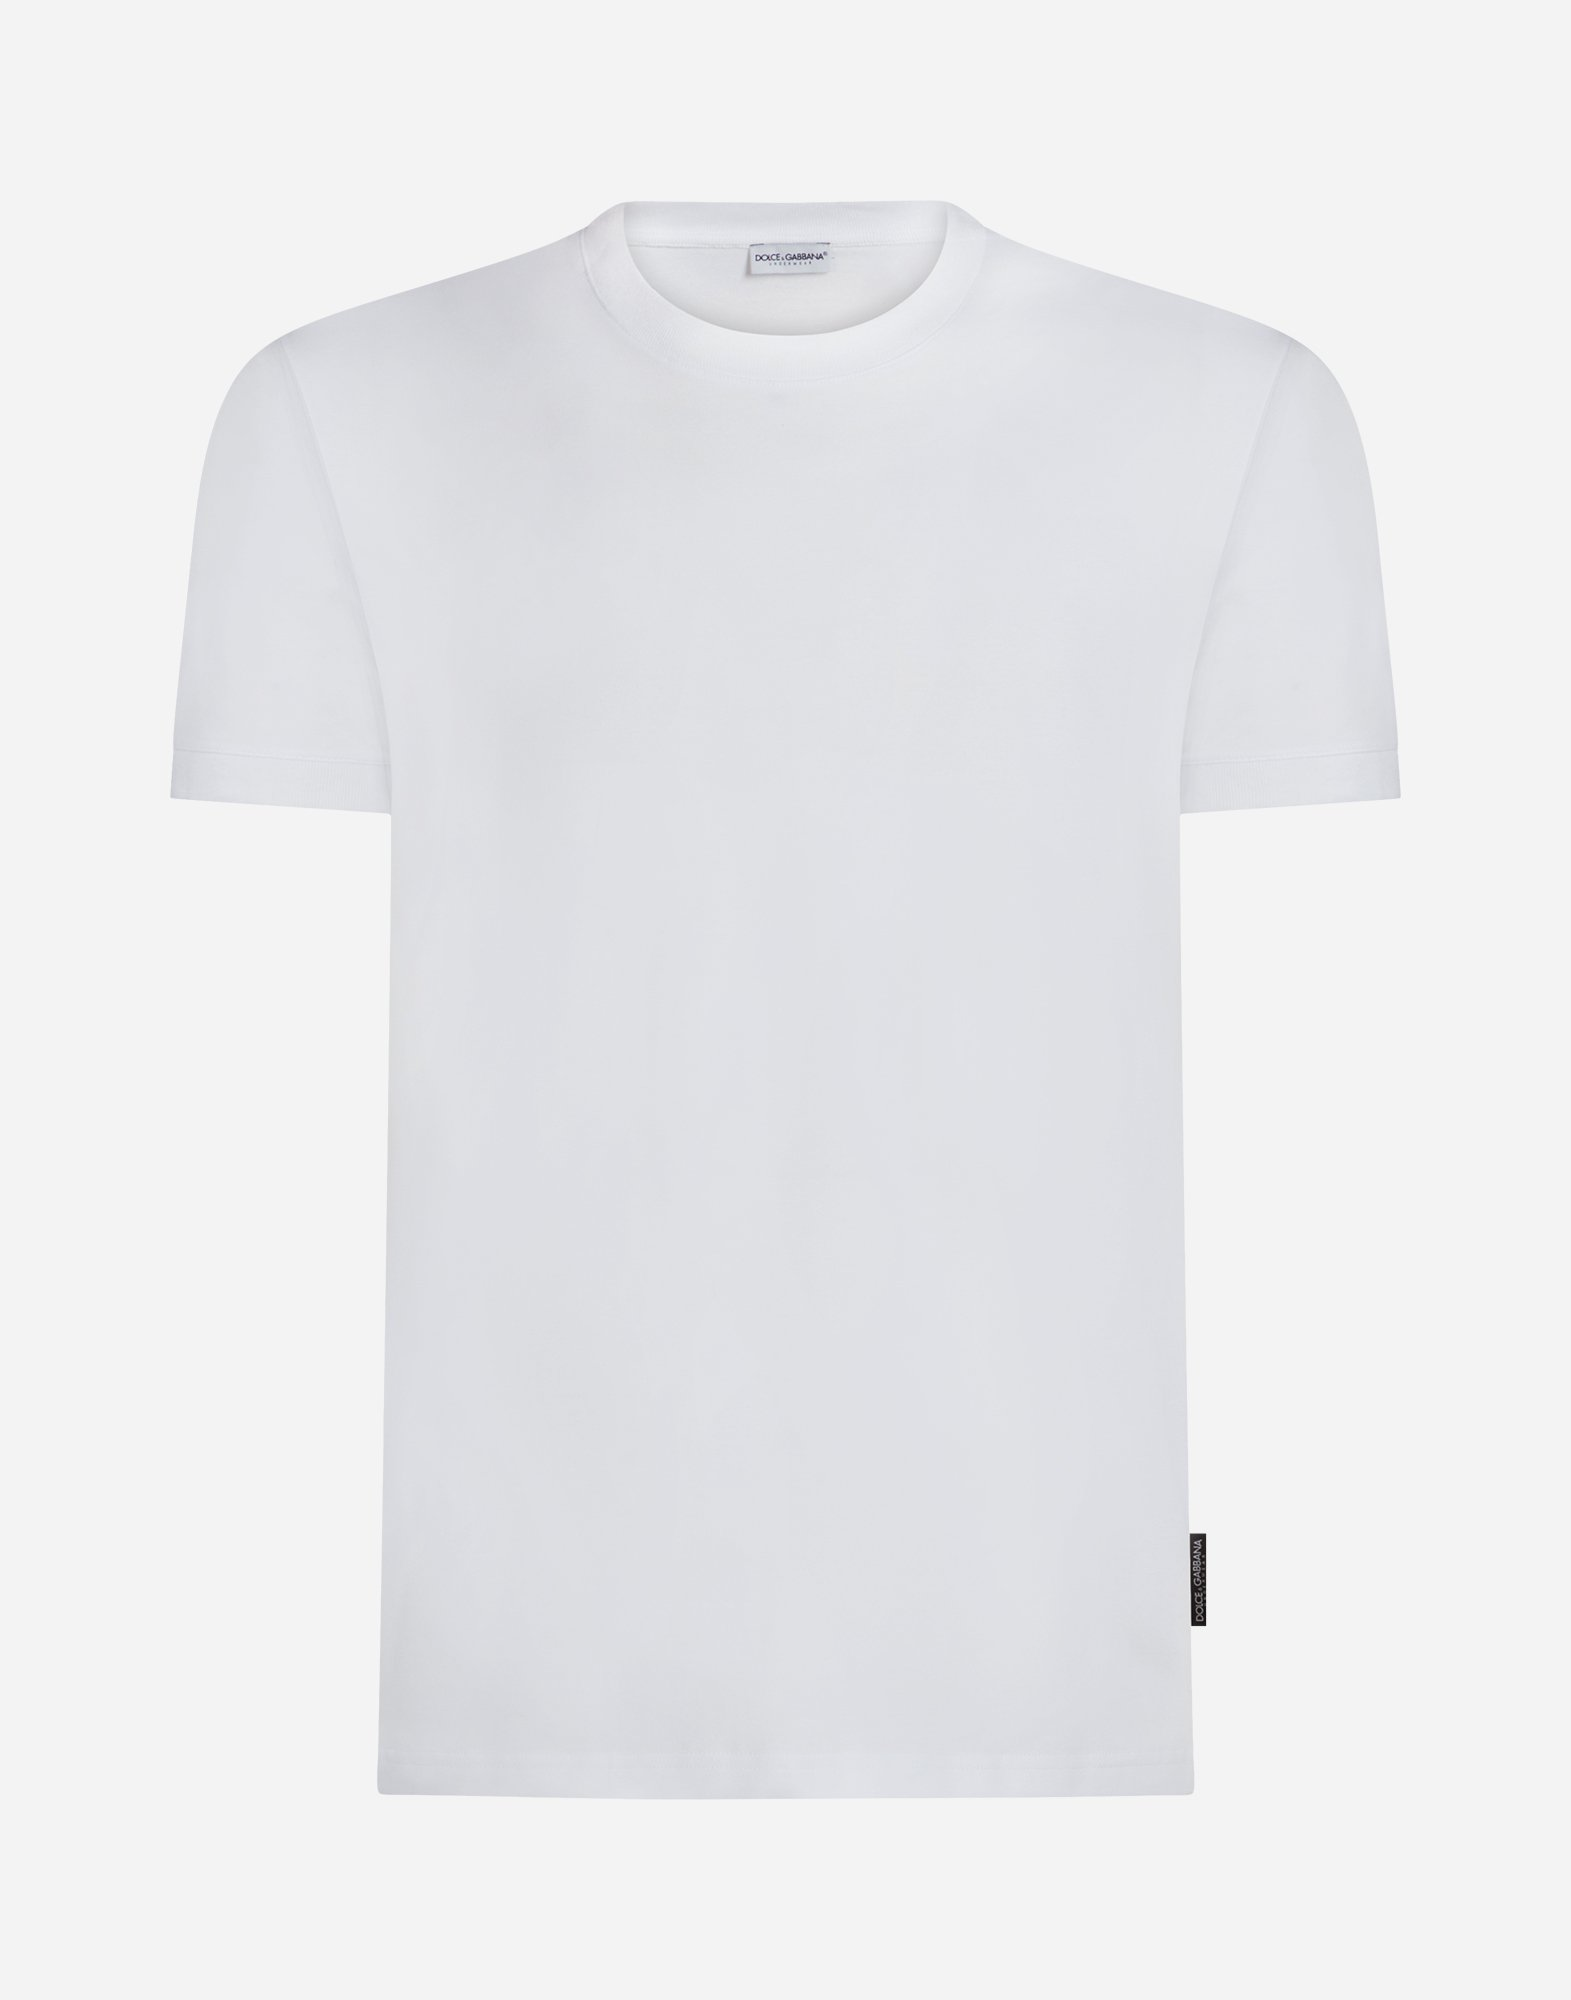 Dolce&Gabbana CREW NECK COTTON T-SHIRT